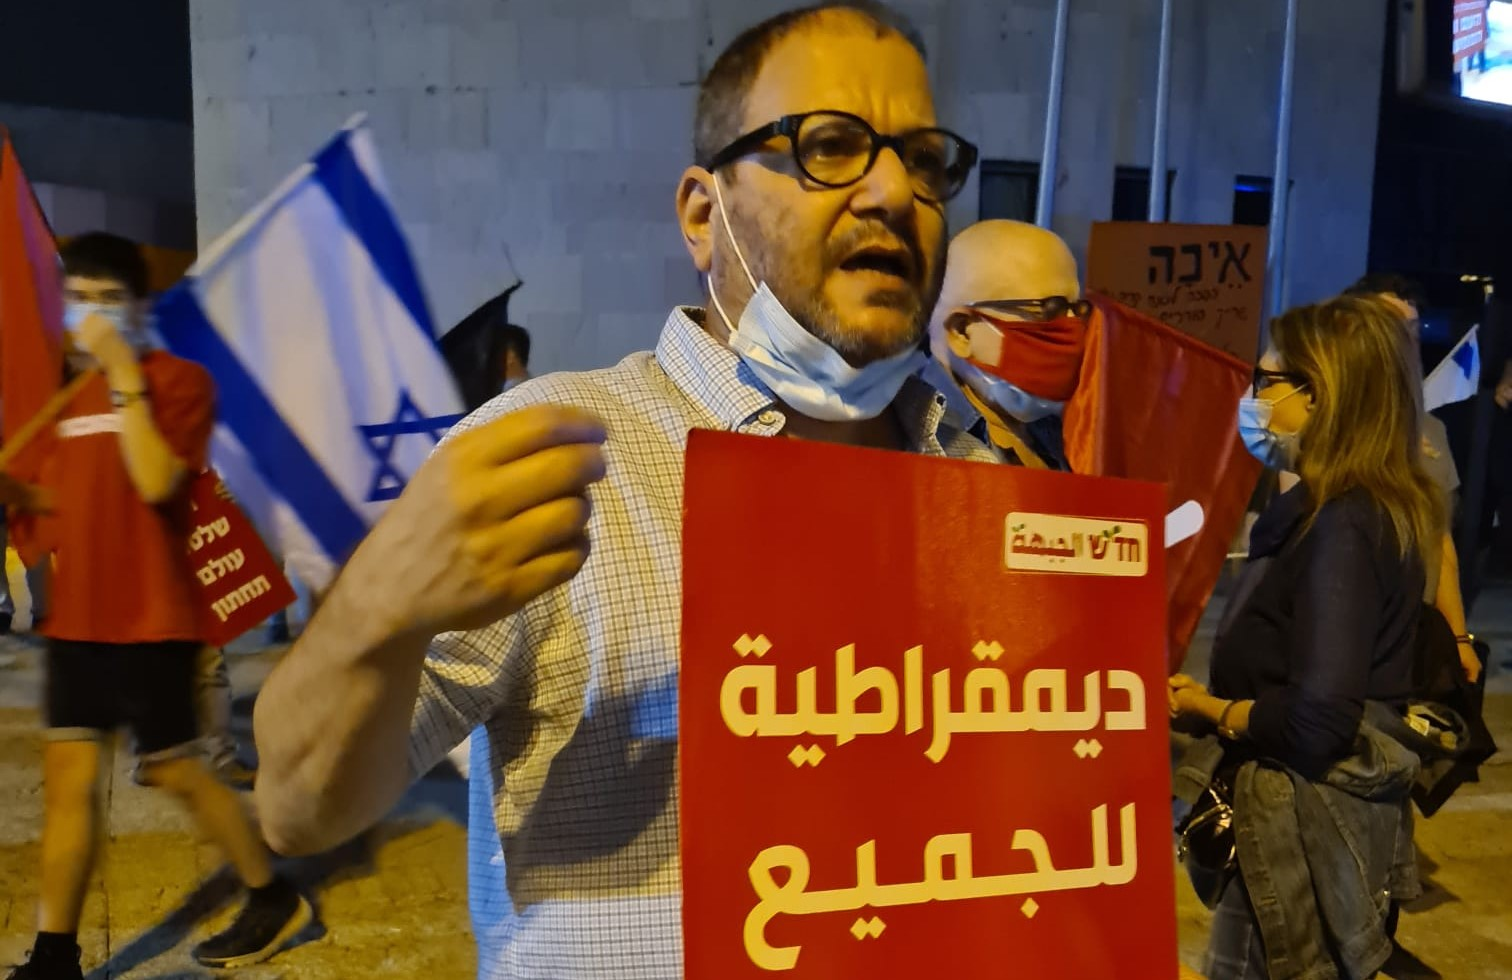 """Hadash MK Ofer Cassif (Joint List) at the anti-Netanyahu protest held in Holon, south of Tel Aviv, on Saturday evening, November 7. The Hadash sign reads in Arabic: """"Democracy for All."""""""